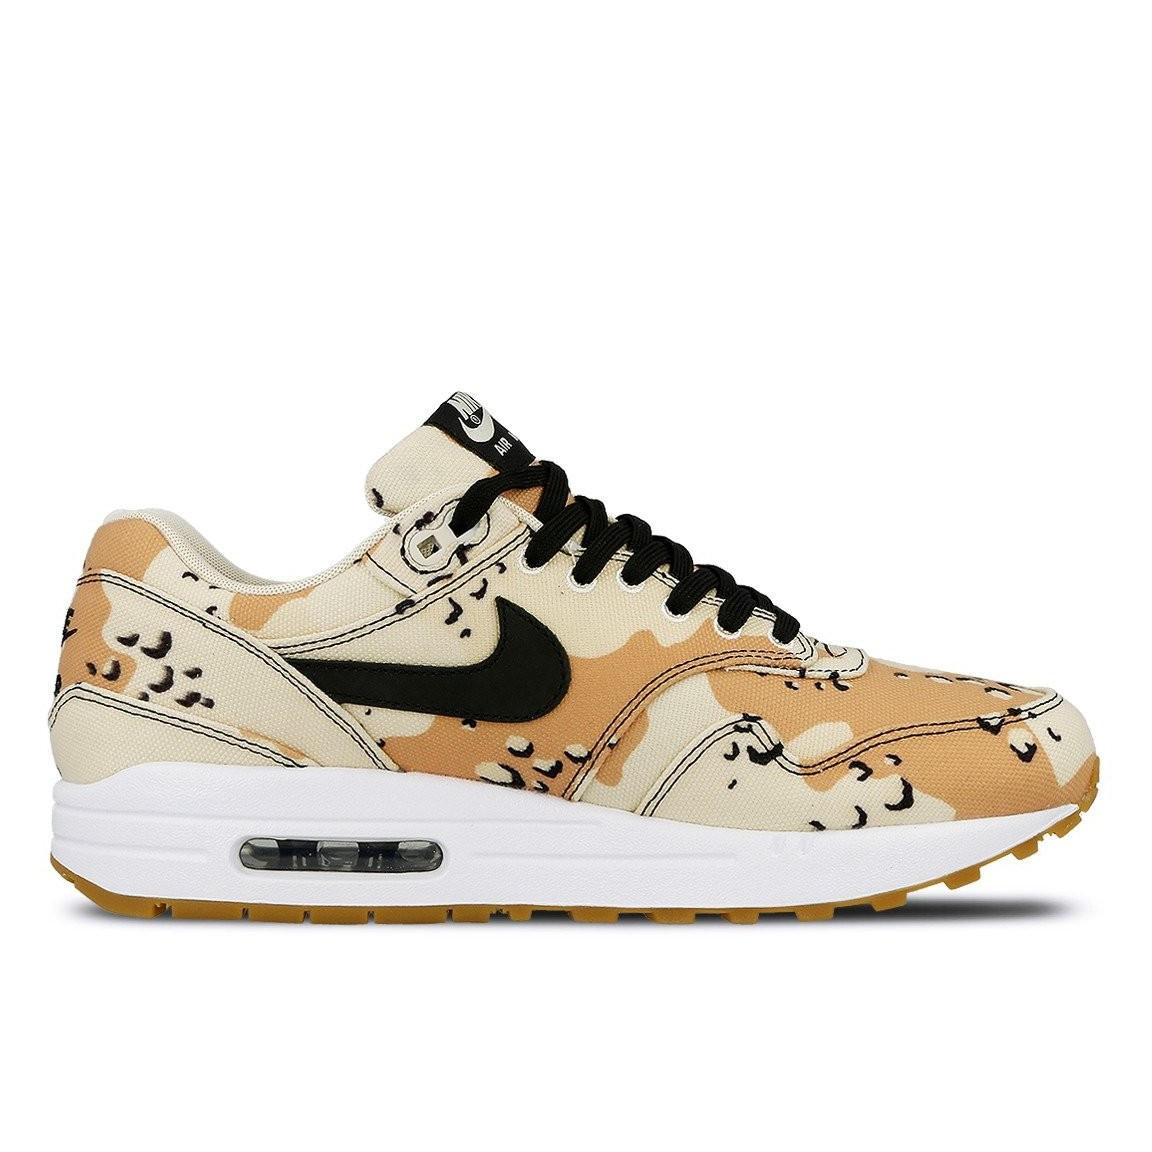 875844-204 Nike Air Max 1 Premium Chaussures - Beach/Noir-Praline-Light Cream